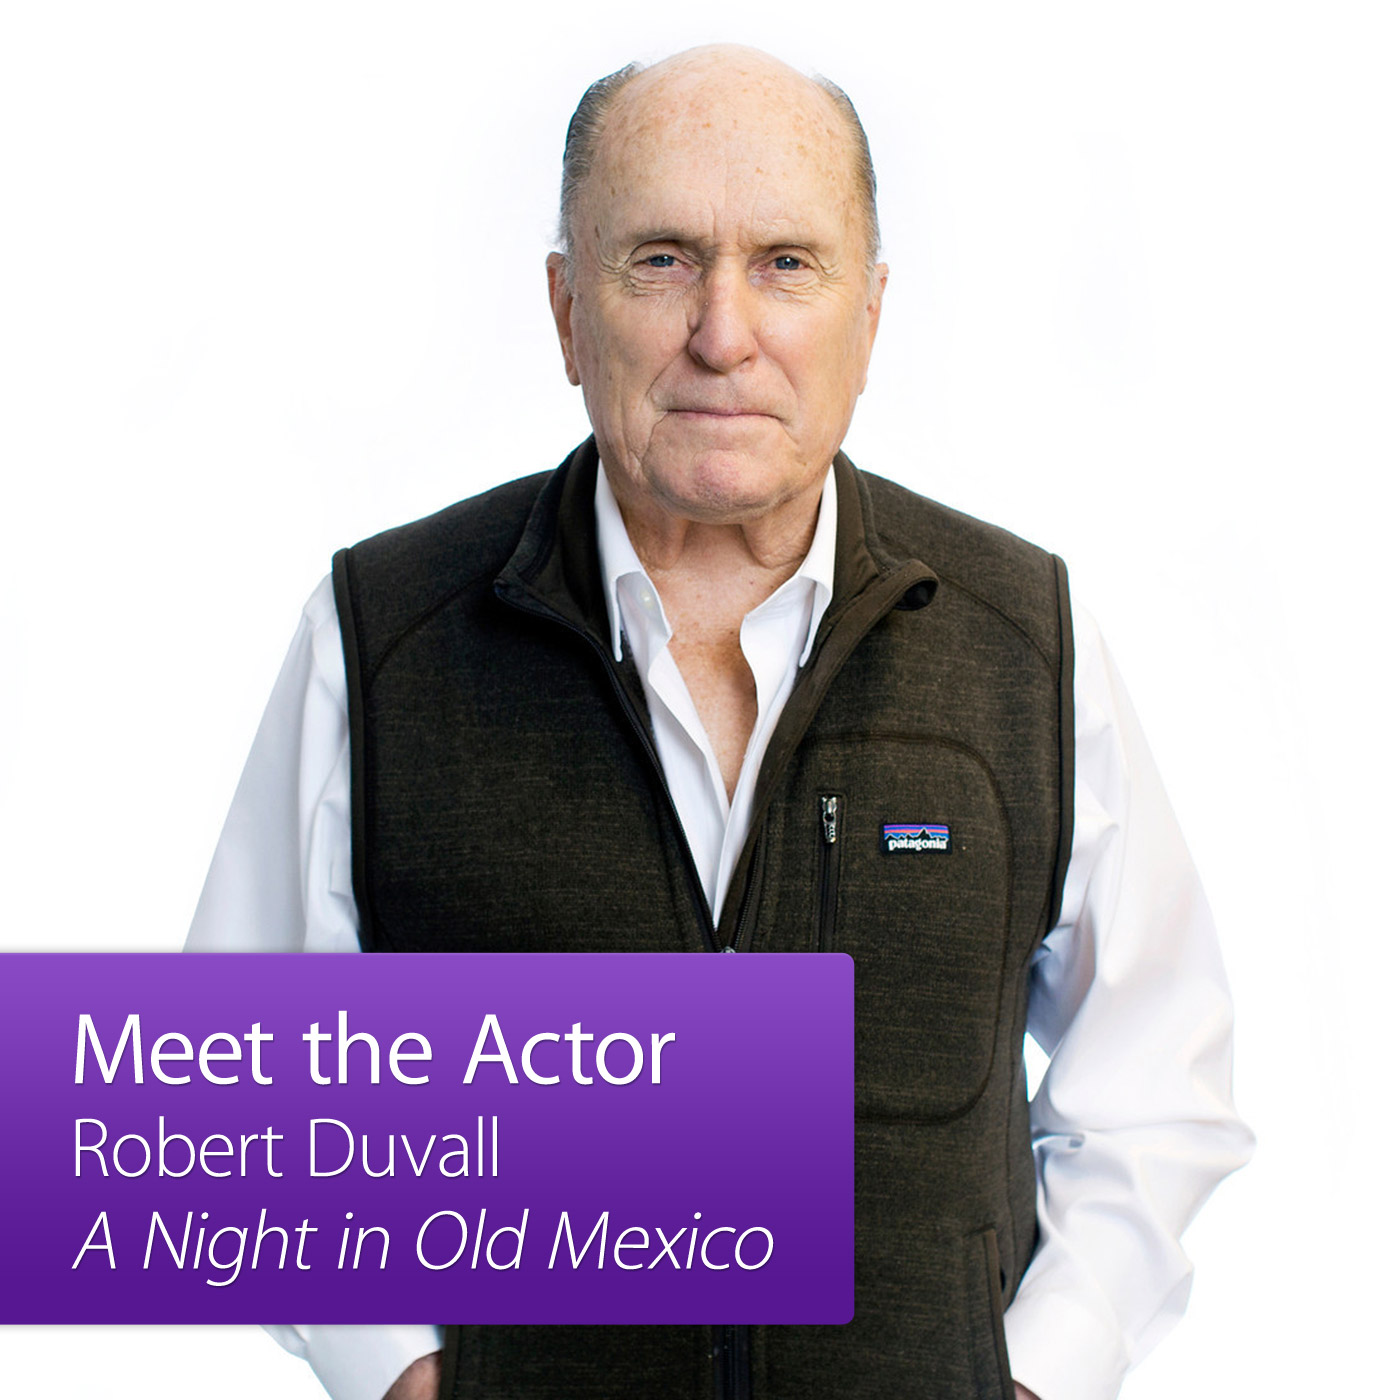 Robert Duvall: Meet the Actor